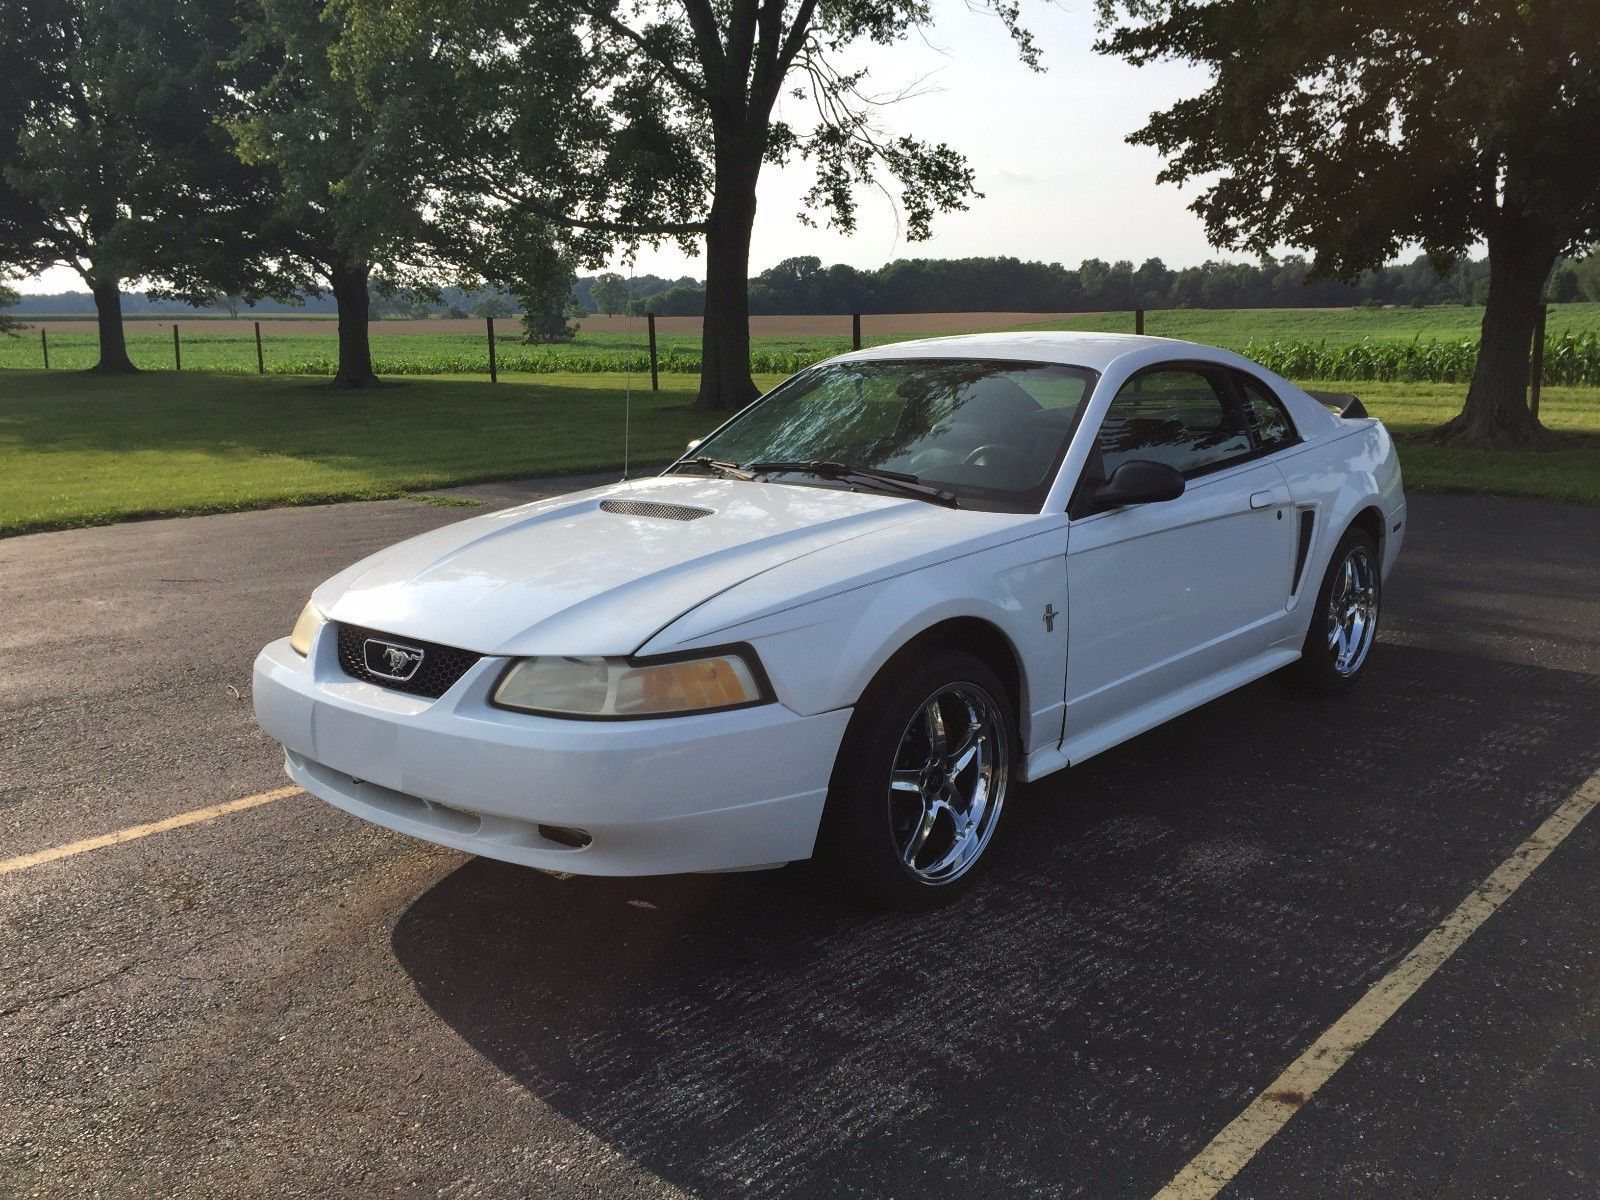 Awesome Great 2000 Ford Mustang  2000 Ford Mustang with subs and wheels 2017 2018 Check more at https://24auto.cf/2017/great-2000-ford-mustang-2000-ford-mustang-with-subs-and-wheels-2017-2018/